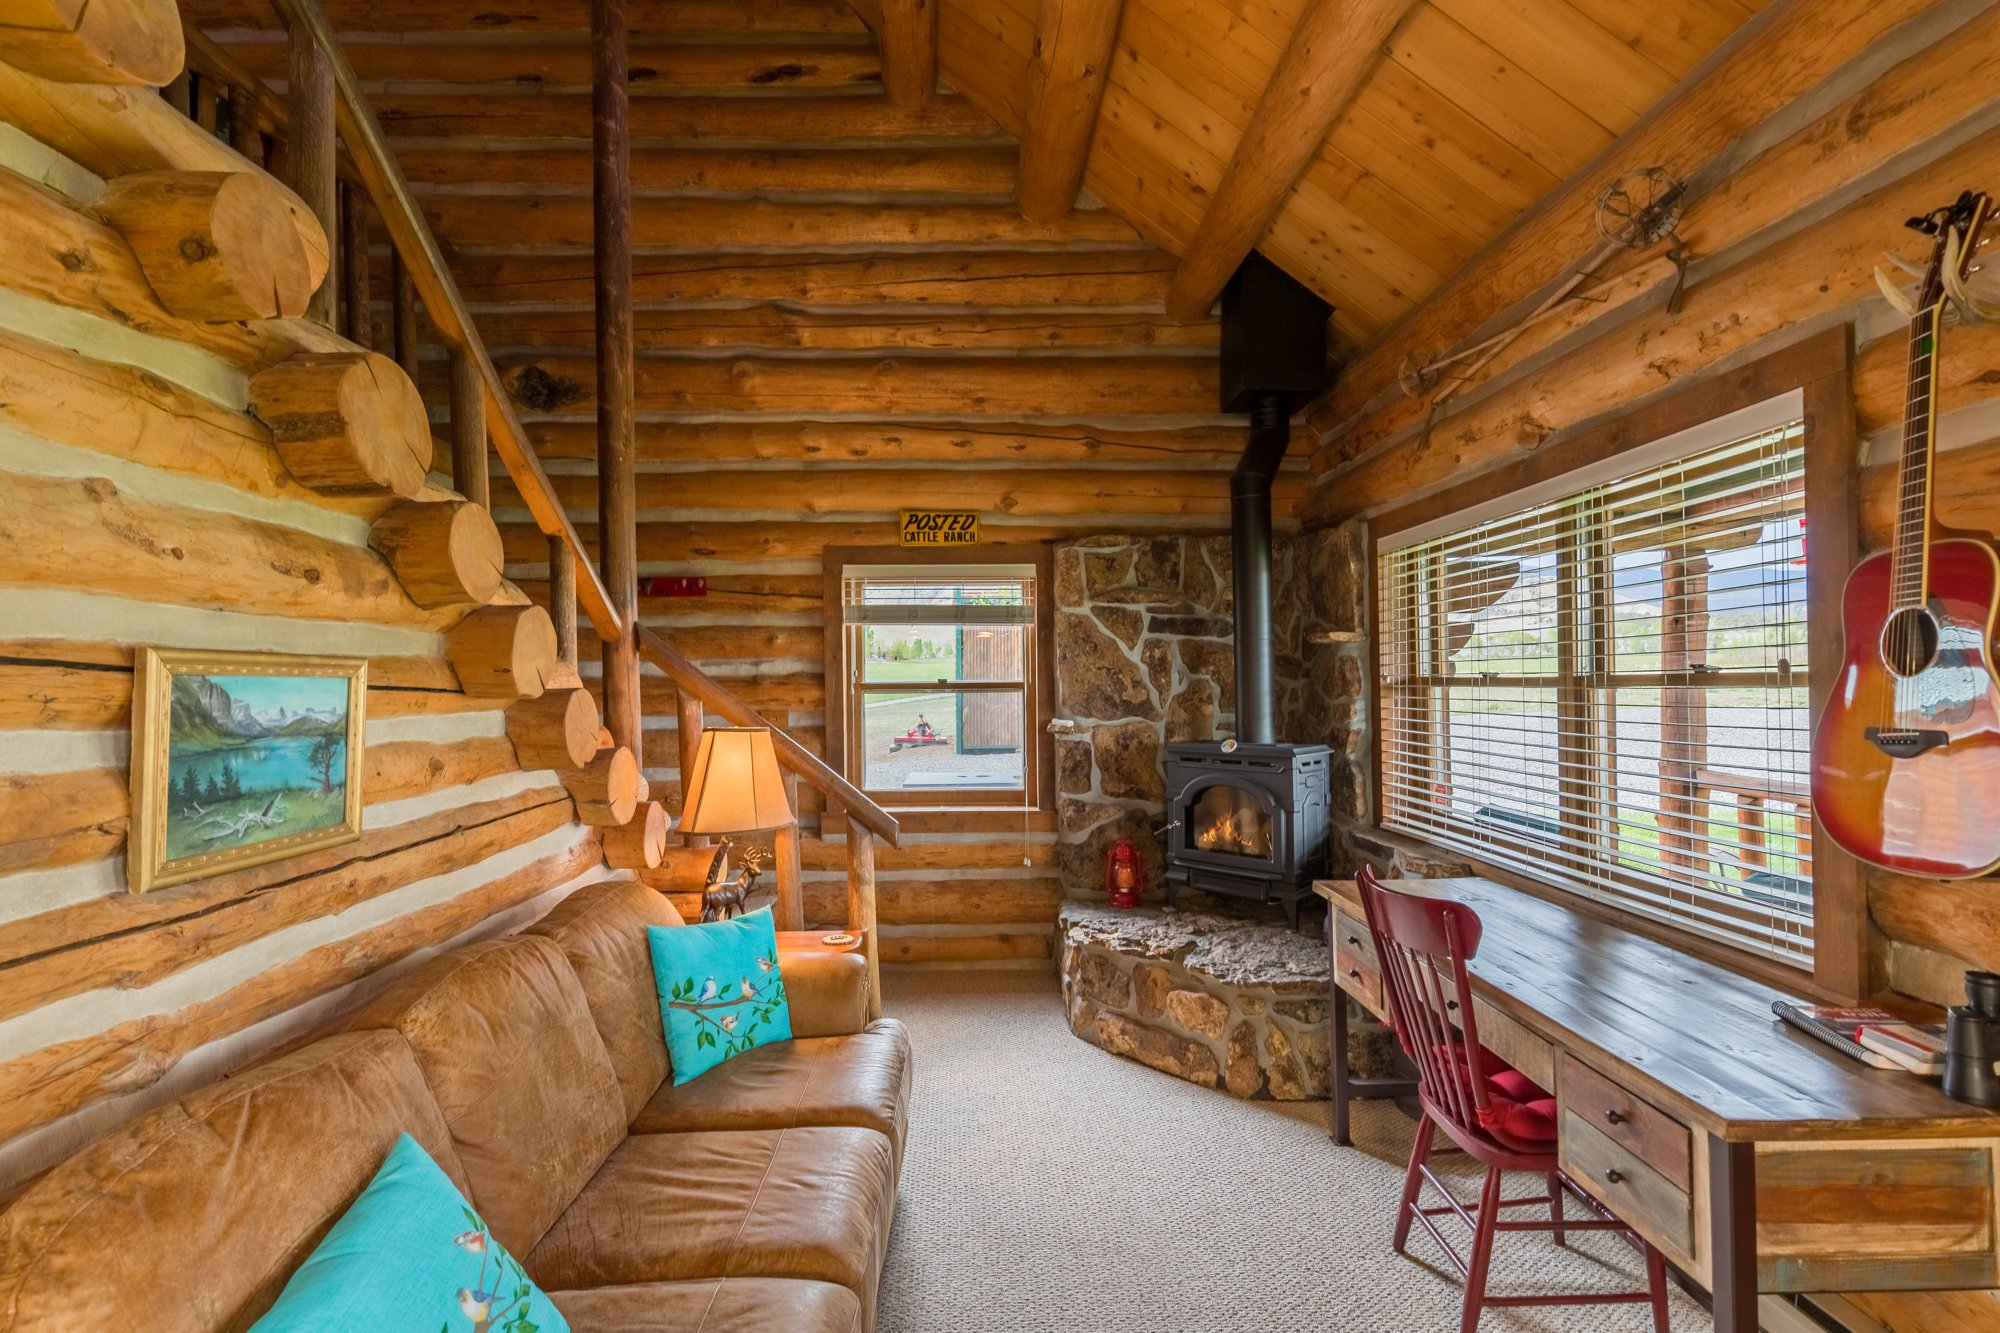 Living Room with Fireplace - 21770 Uncompahgre Rd Montrose, CO 81403 - Atha Team Country Real Estate